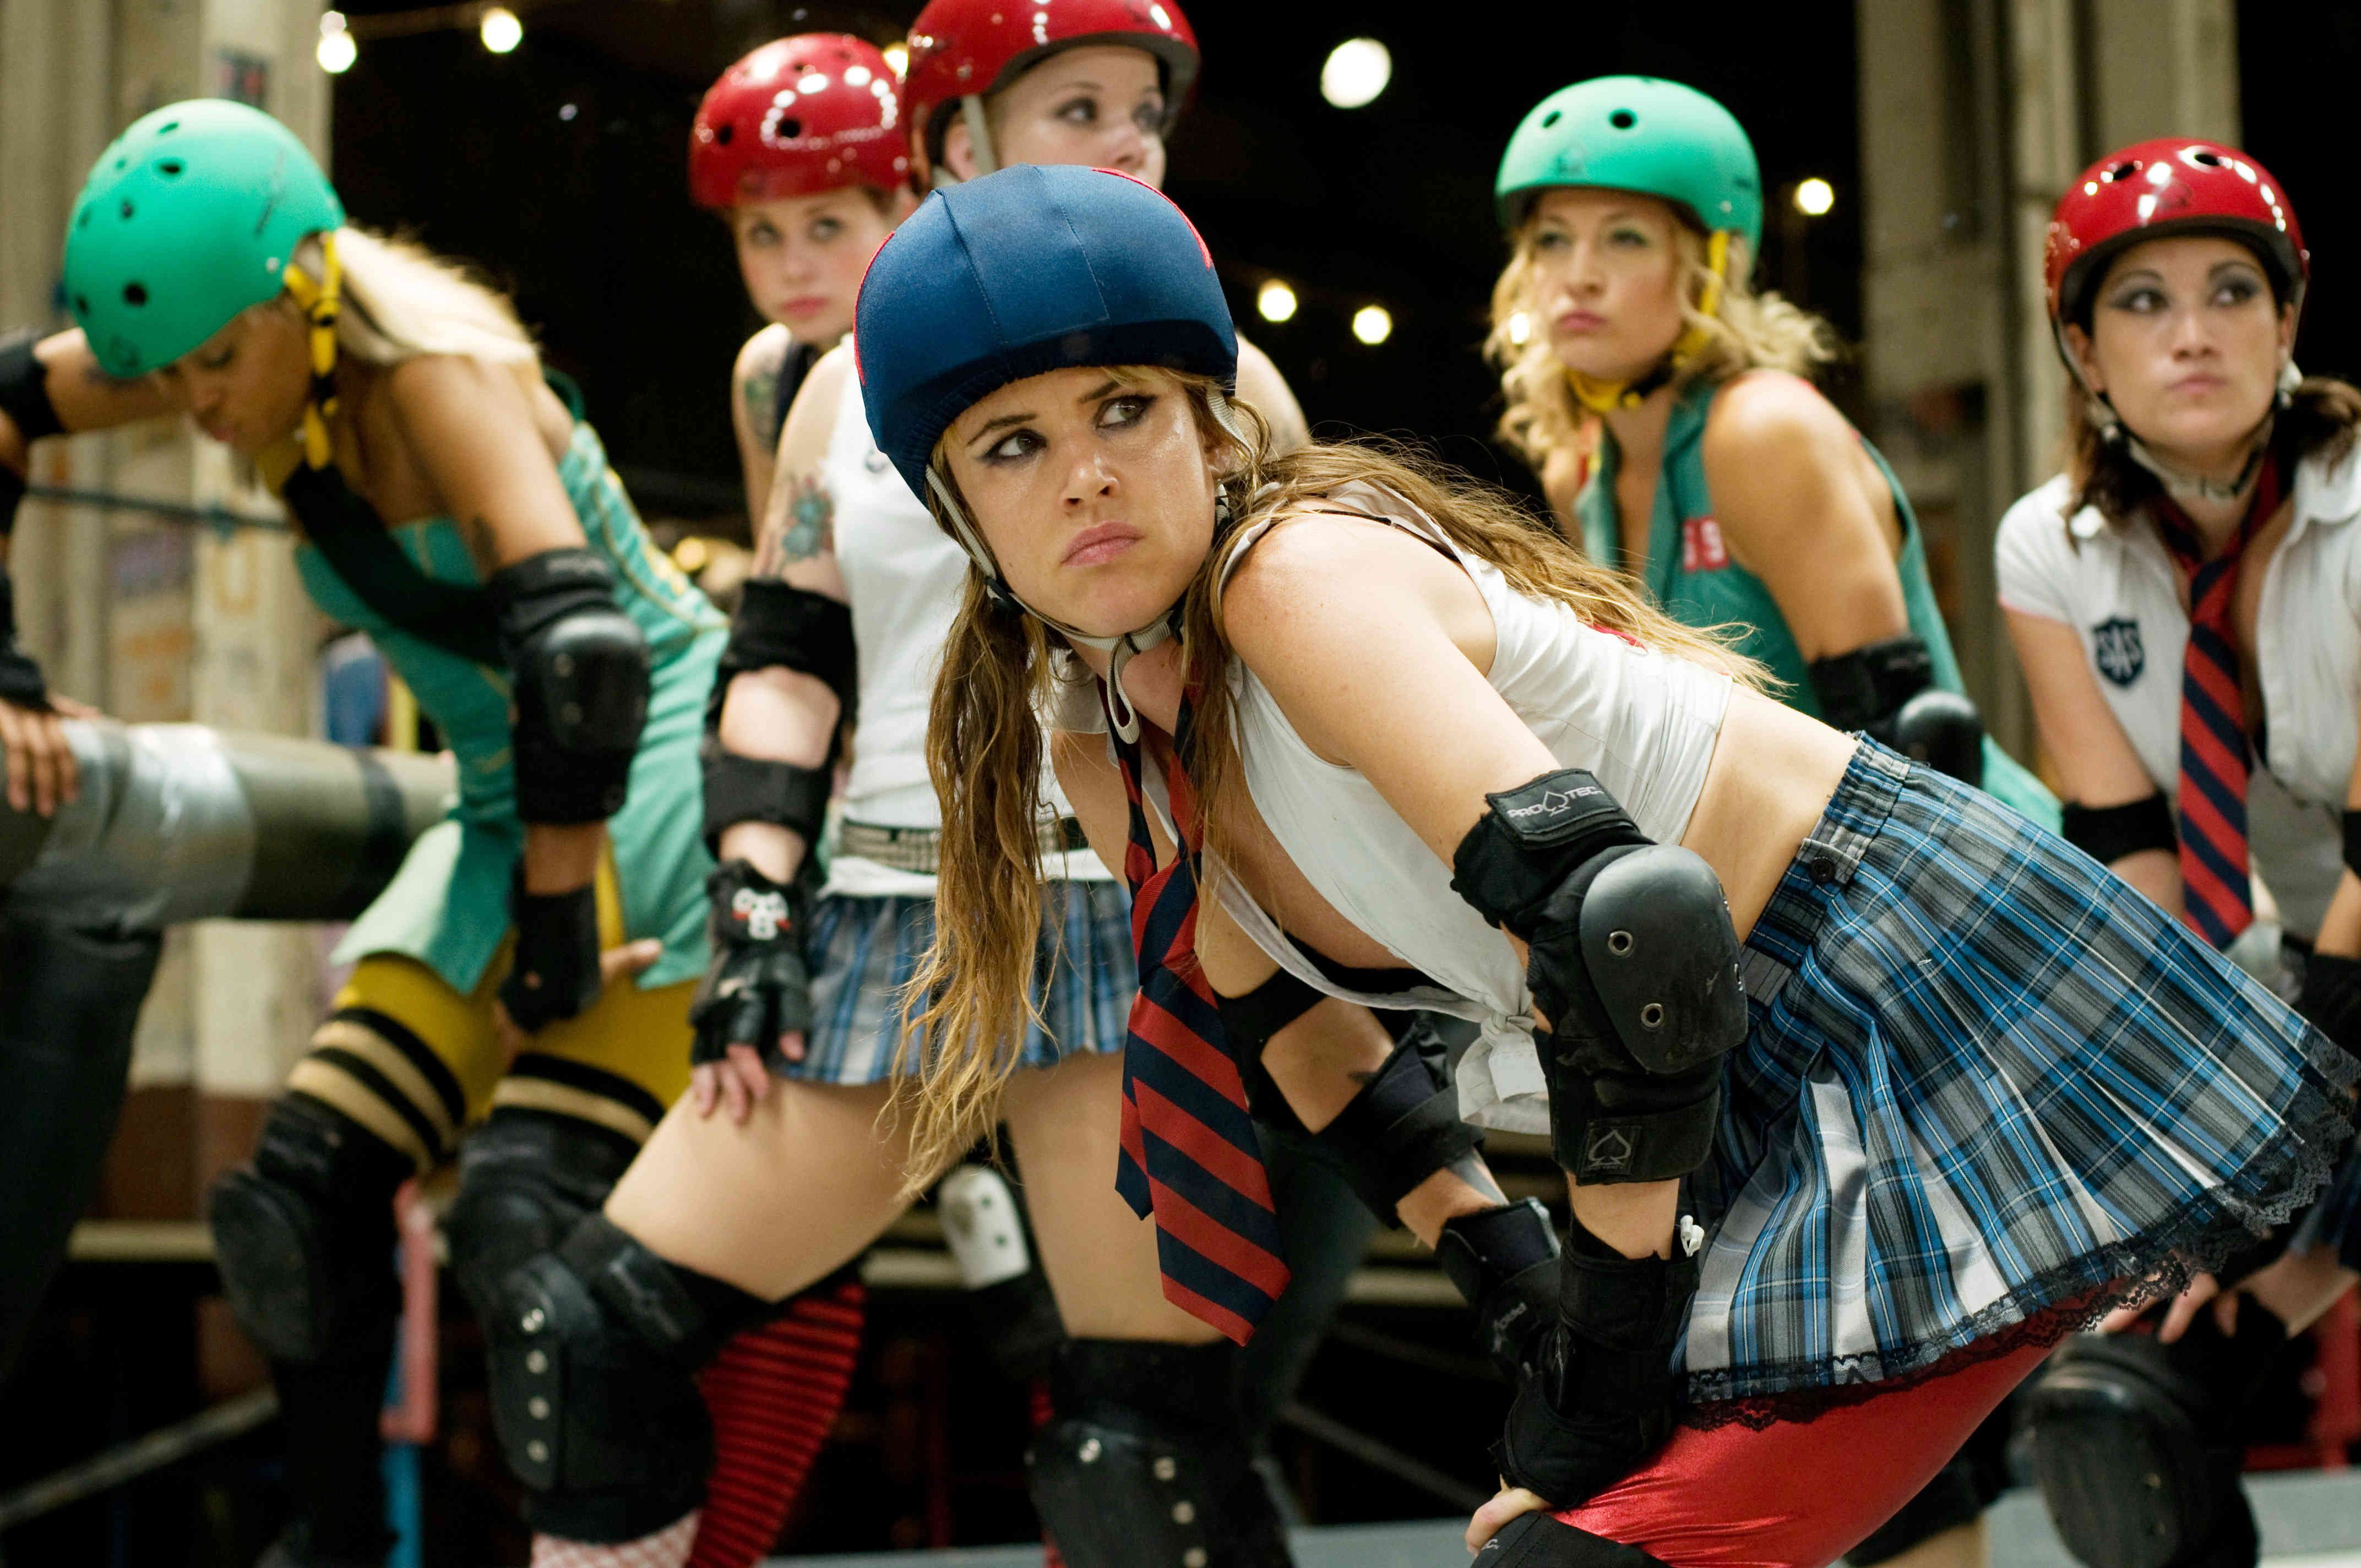 Juliette Lewis as Dinah Might 'Whip It' (2009) Roller